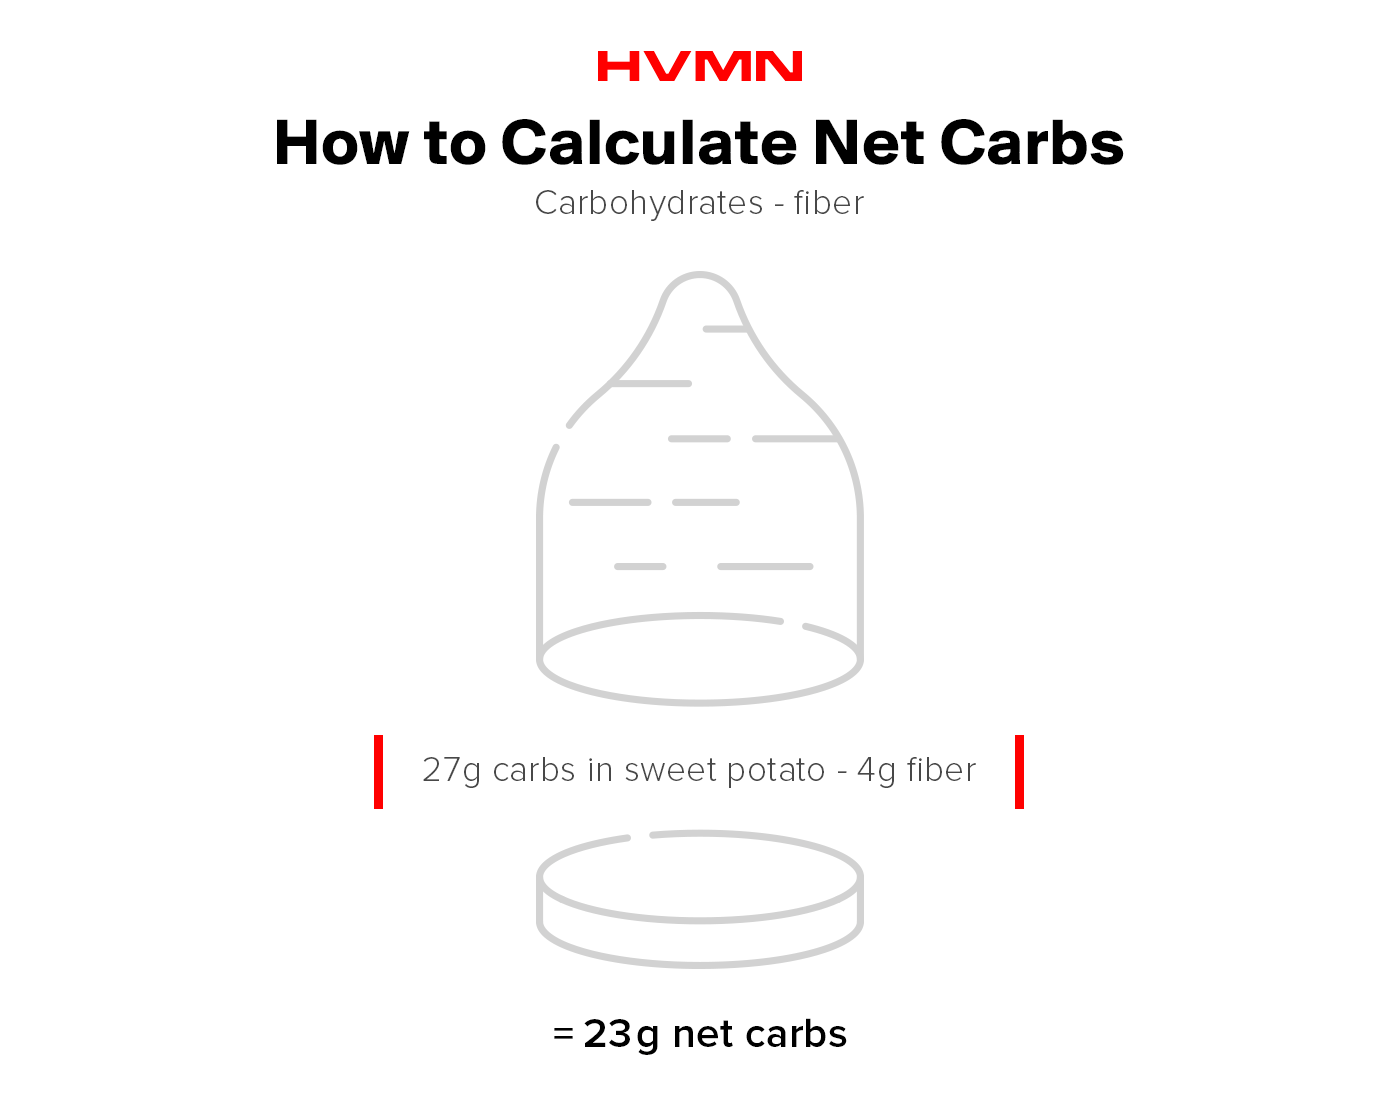 This image shows how to calculate net carbs. You simply take the total number of carbs and subtract the amount of fiber to arrive at net carbs.